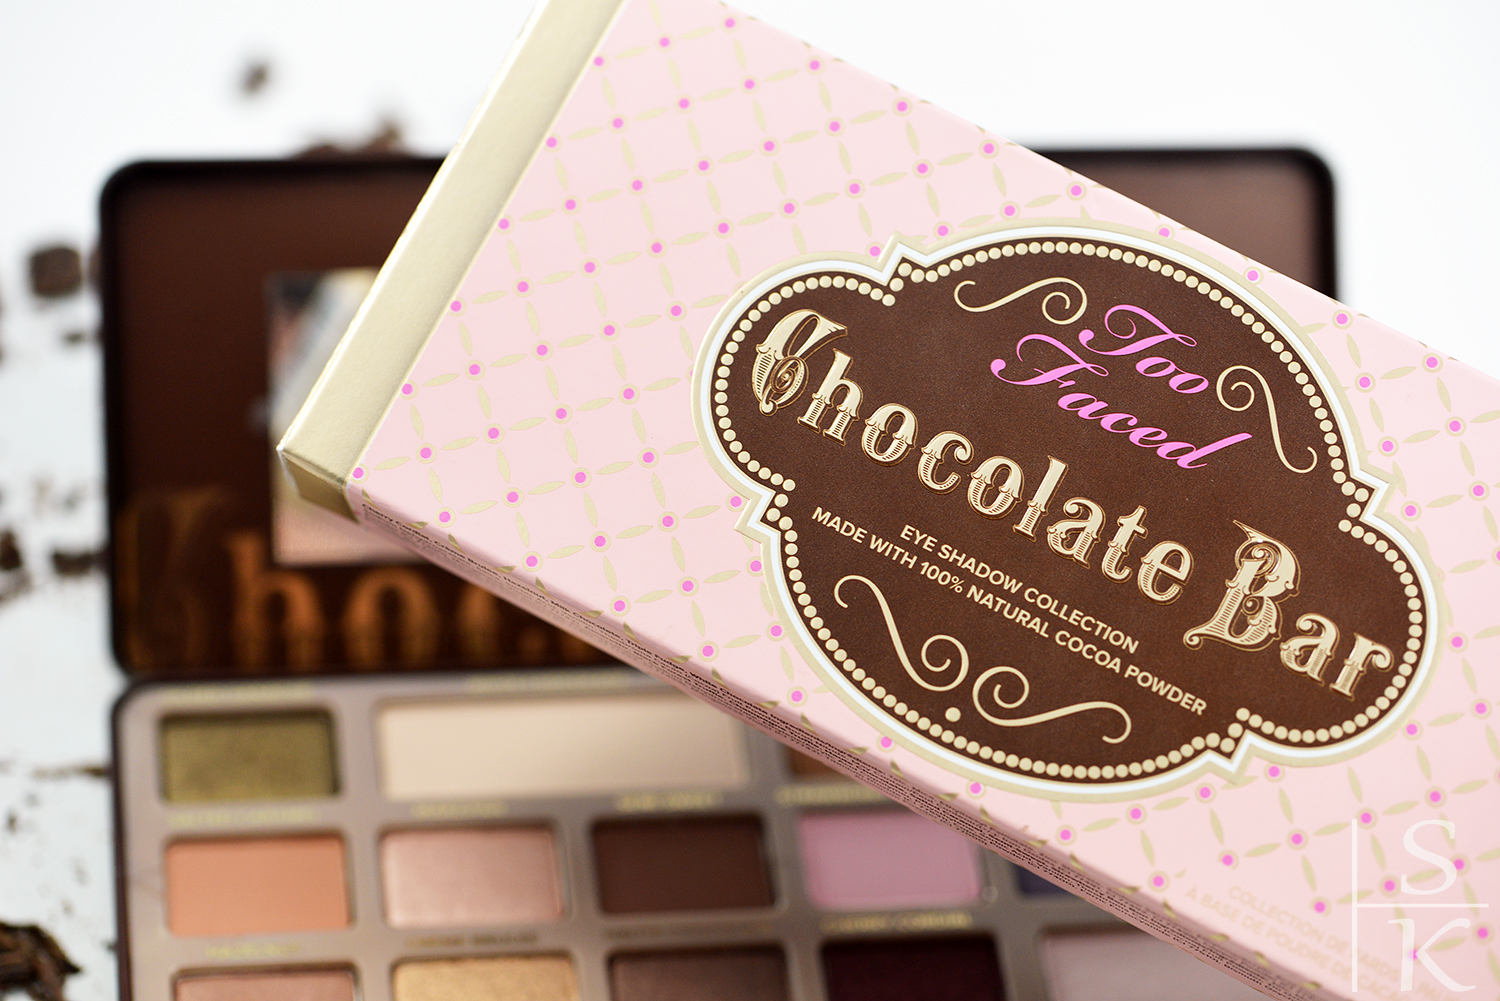 Too Faced - Chocolate Bar Review Saskia-Katharina Most, Horizont-Blog